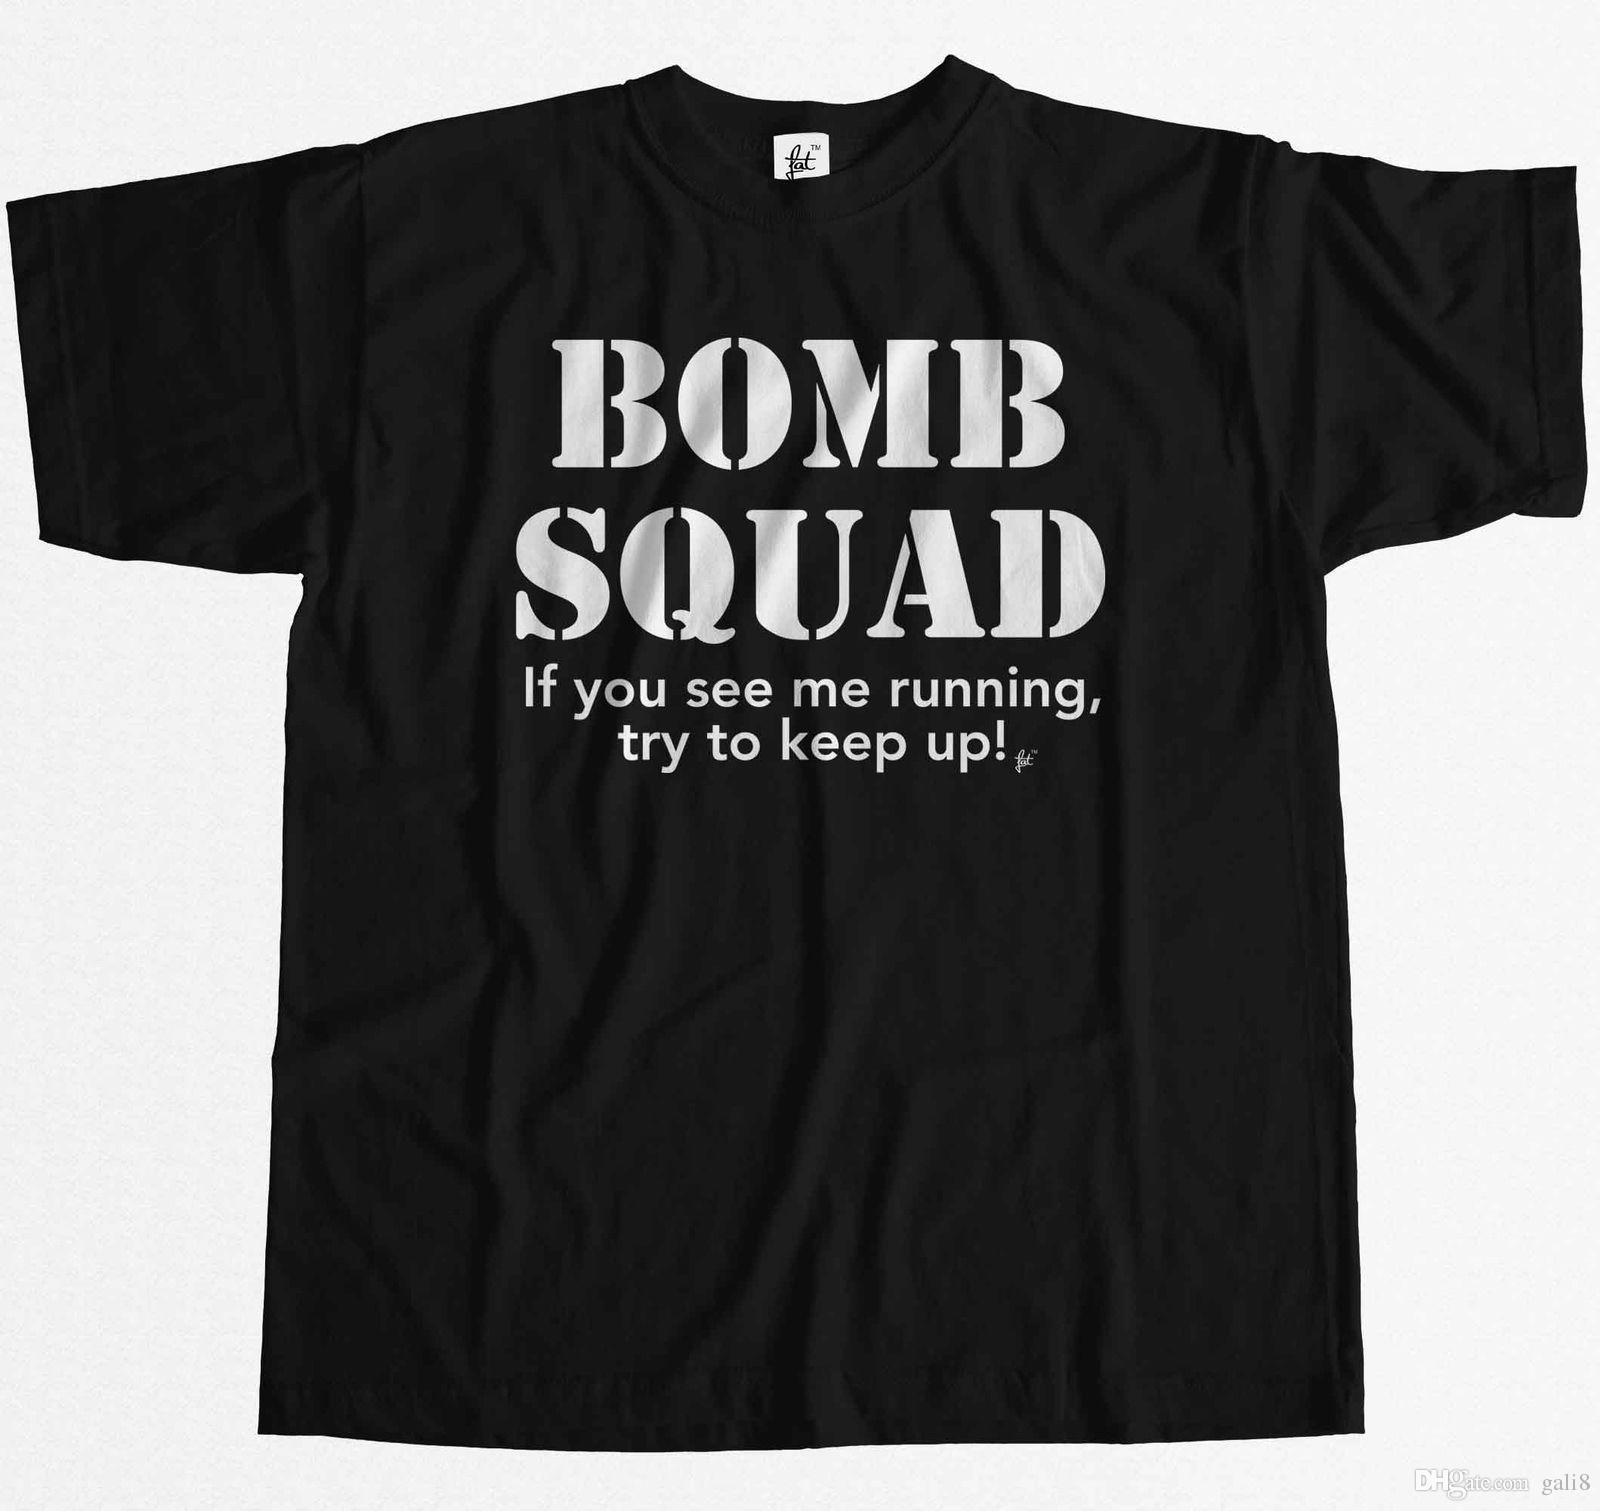 0017bd7b1 Bomb Squad If You See Me Running Try To Keep Up! Mens T Shirt Print On Tee  Shirt Go T Shirts From Gali8, $11.68| DHgate.Com